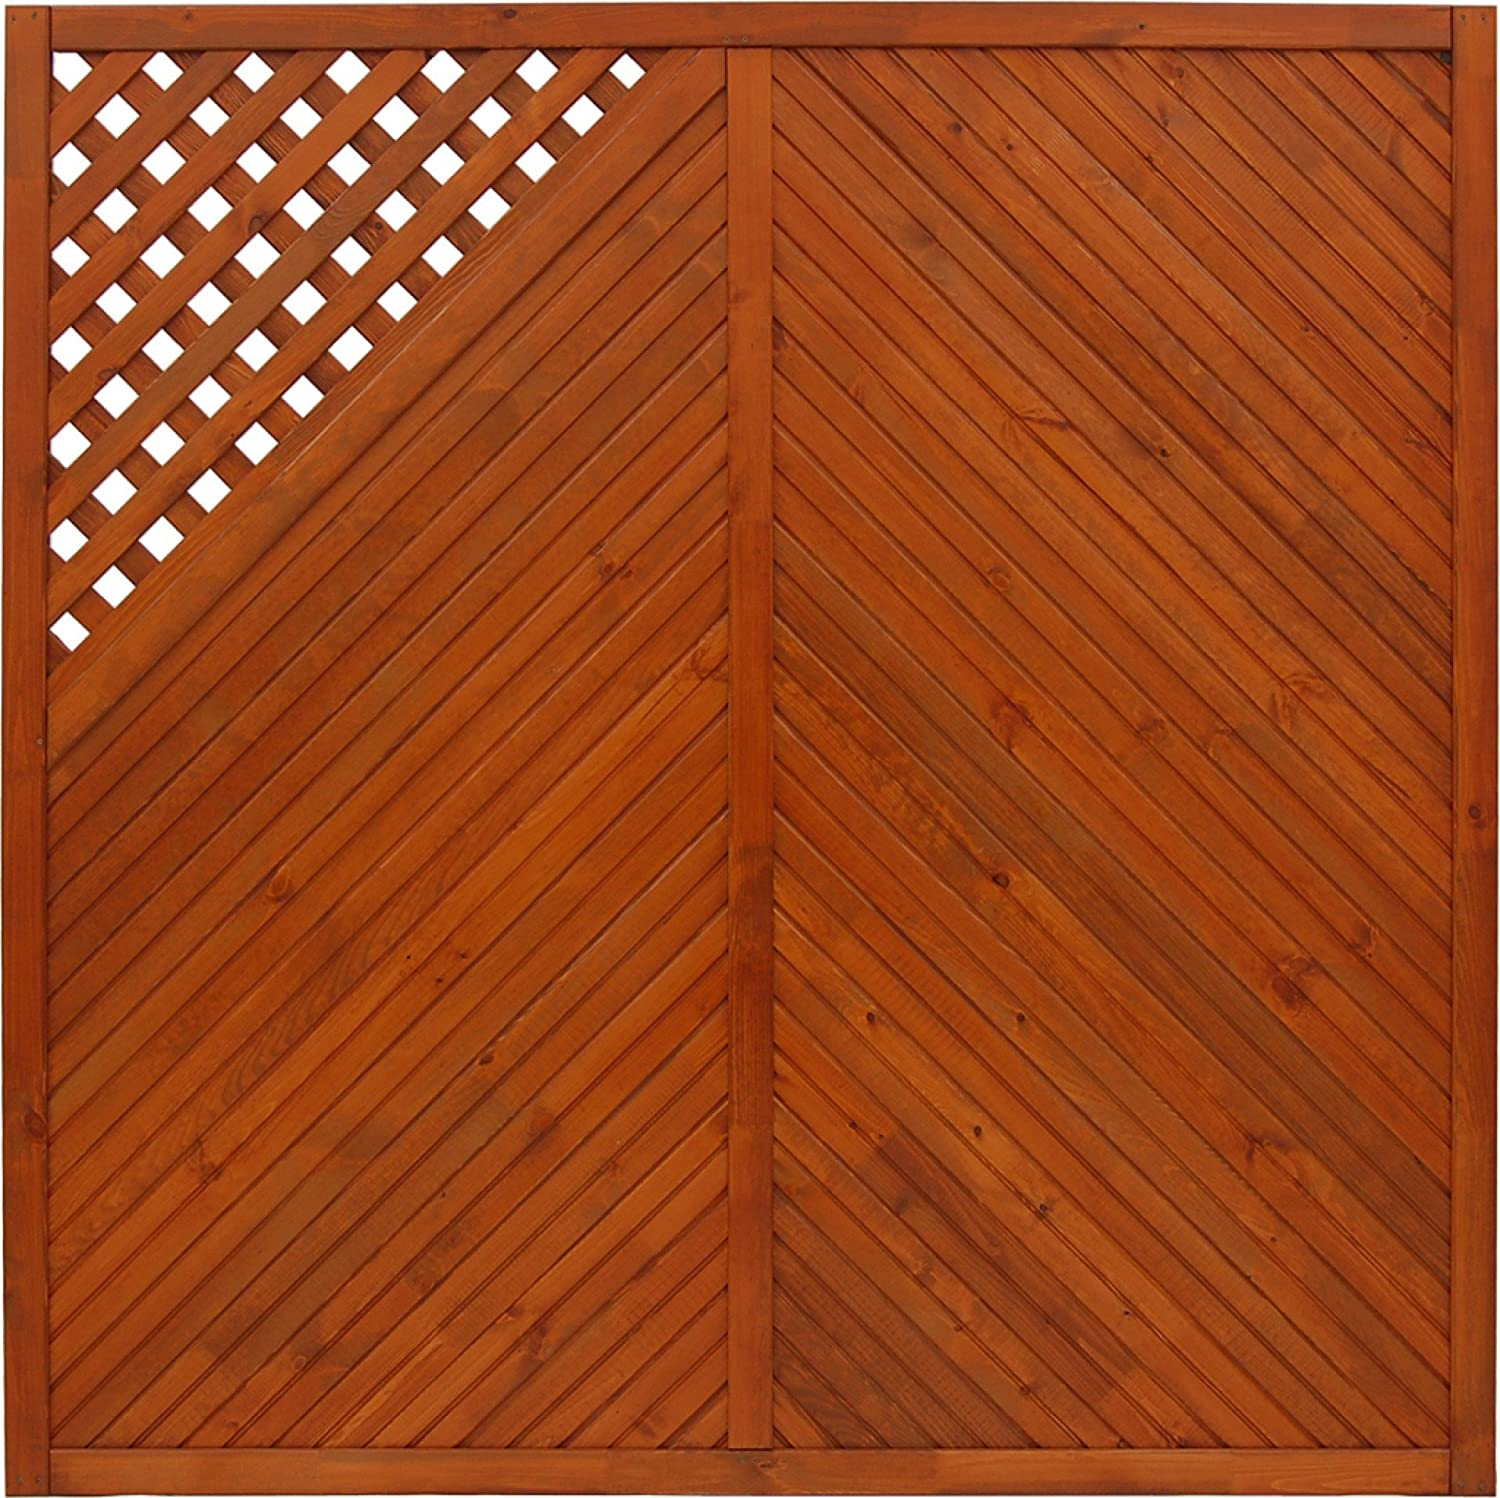 Andrewex wooden fence 180 x 180, varnished, teak, privacy, fencing panel, garden fence